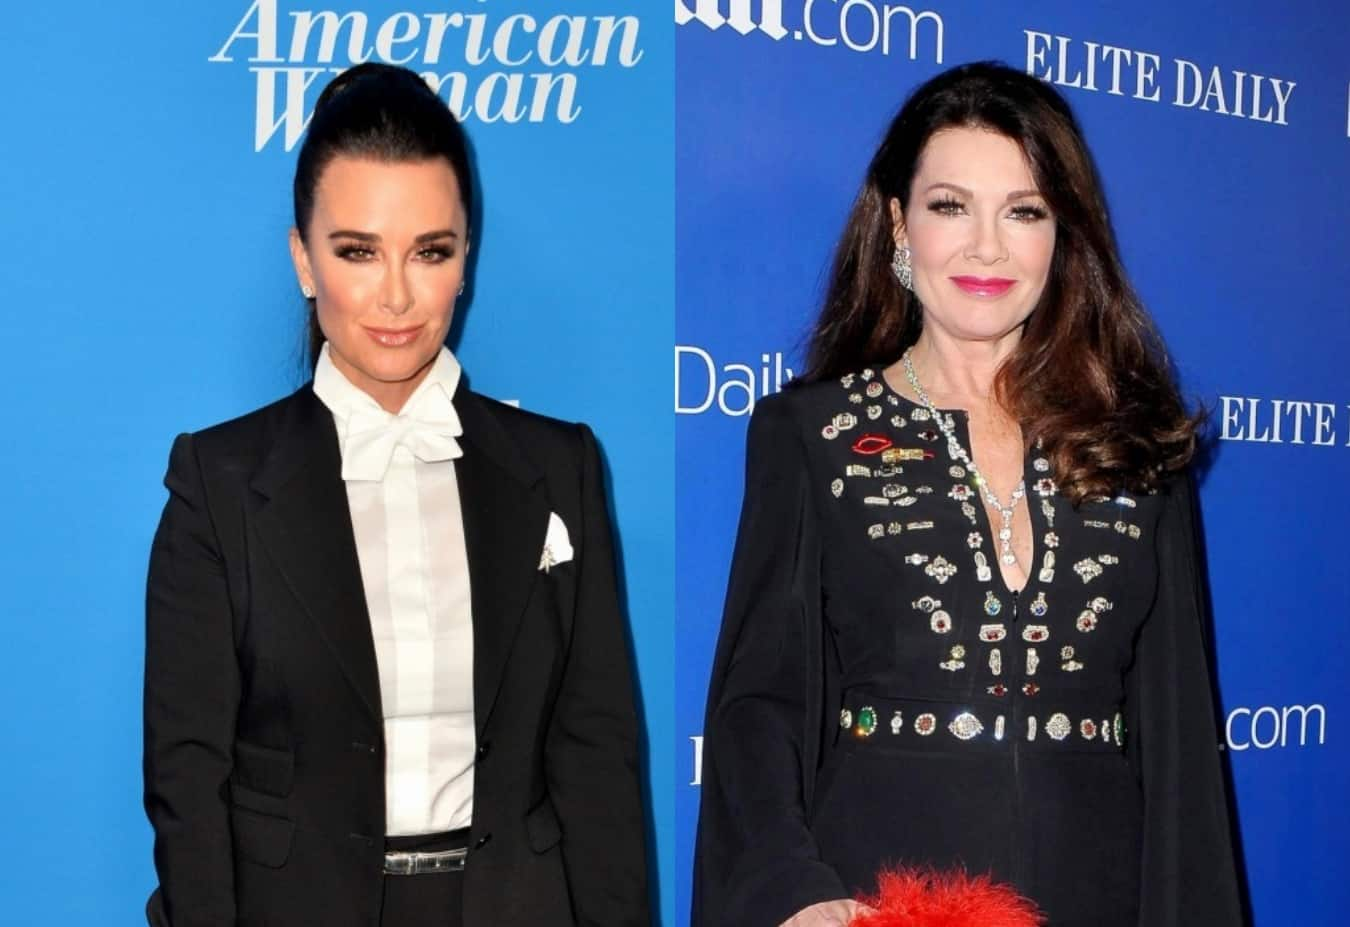 RHOBH's Kyle Richards Reacts After Fans Suspect She Was the One Who Crashed Into Lisa Vanderpump's Pump Restaurant With Her Ferrari